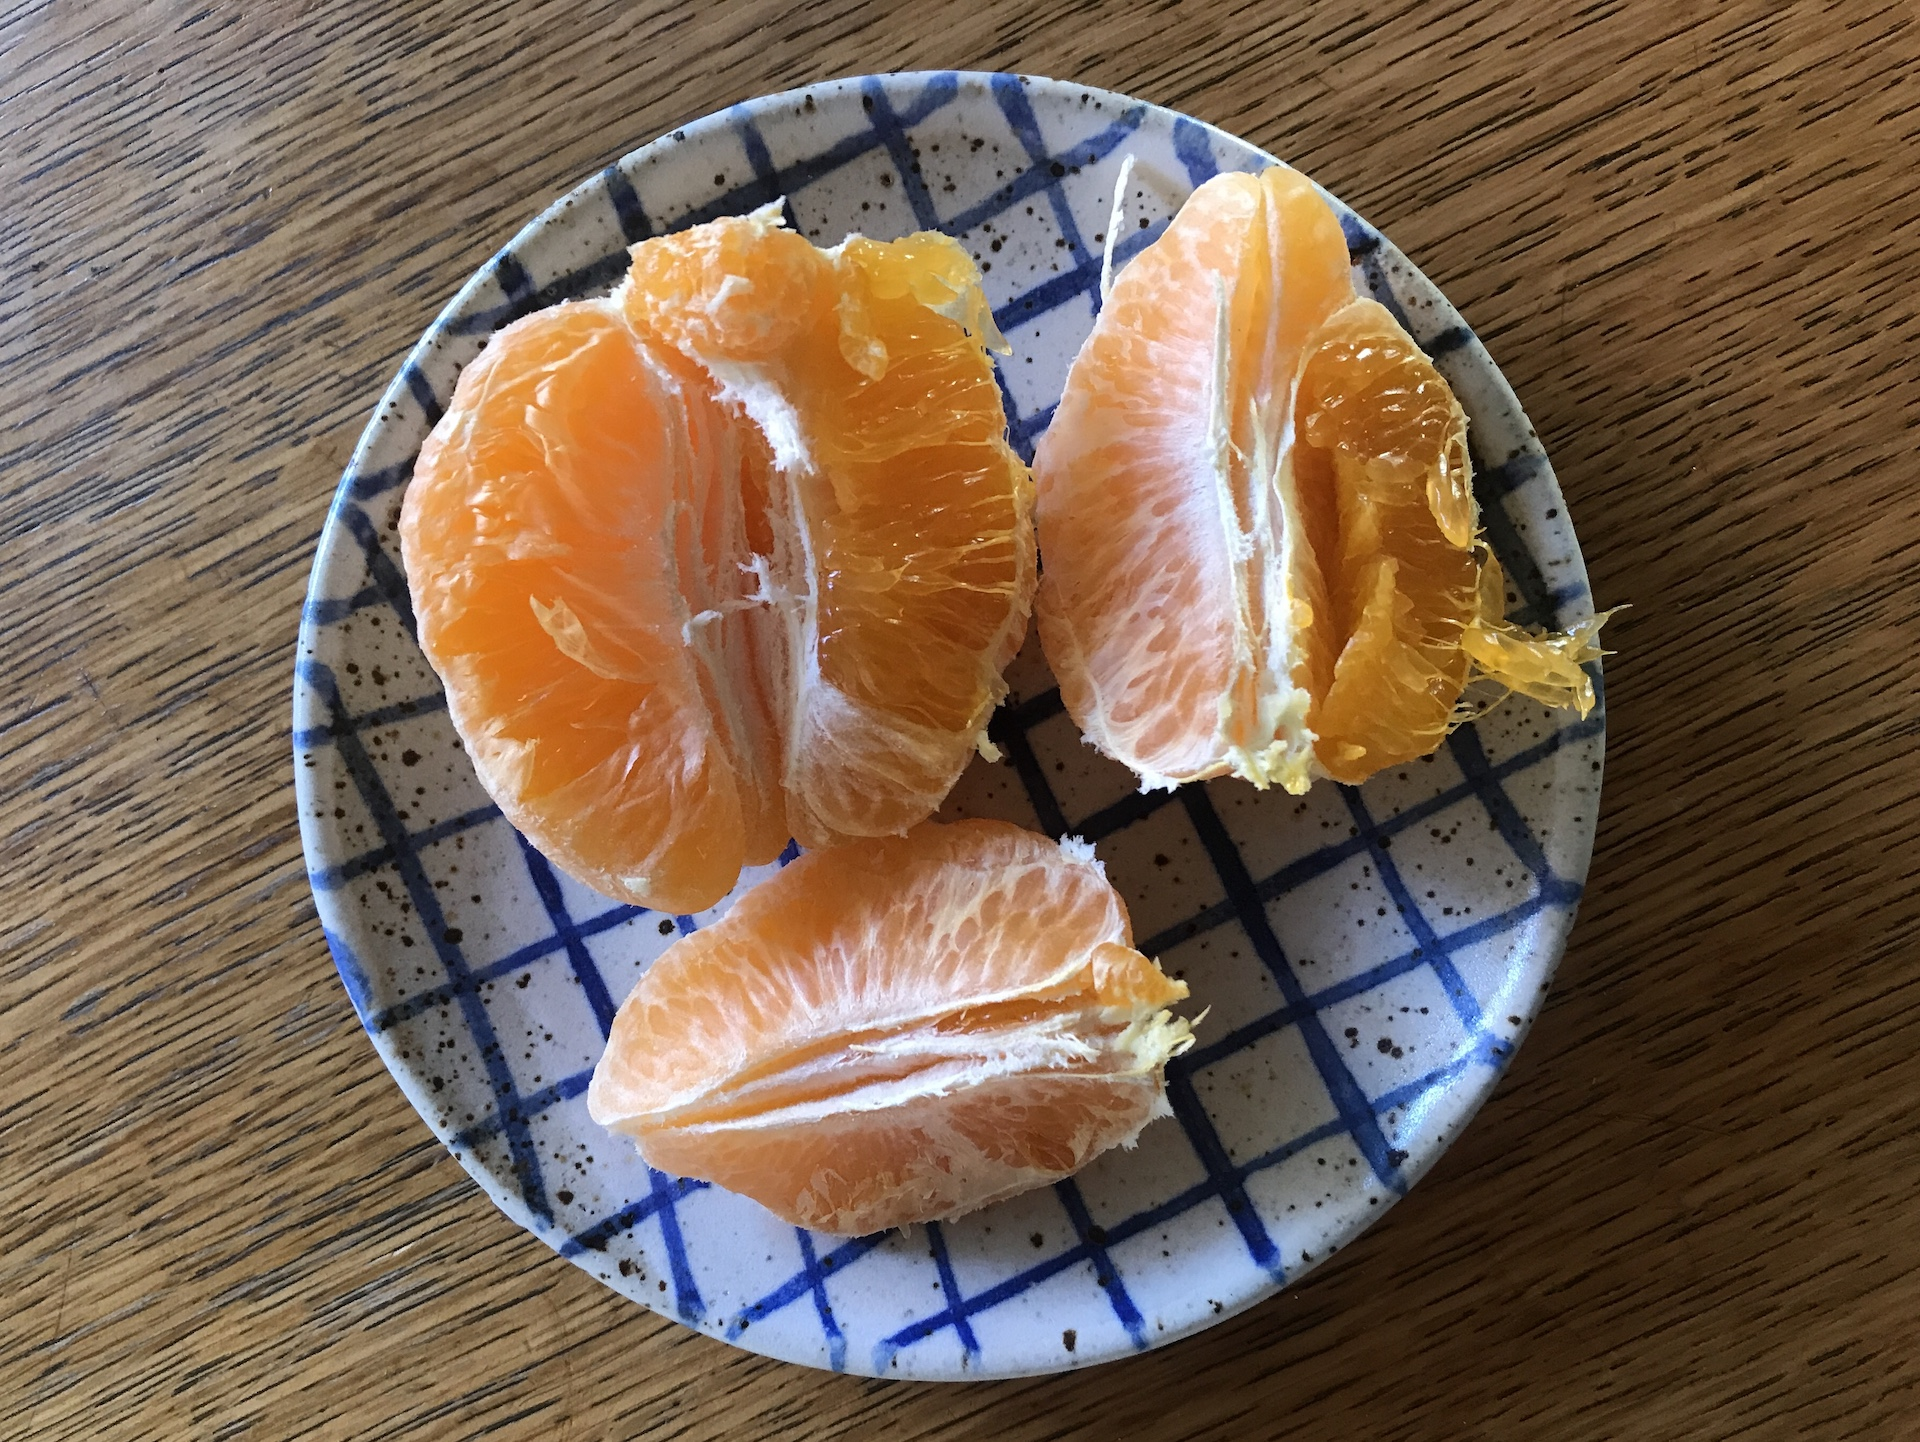 Spring means the last of the sweet oranges like Cara Caras and Sumos but there's plenty to do with them before they're gone.